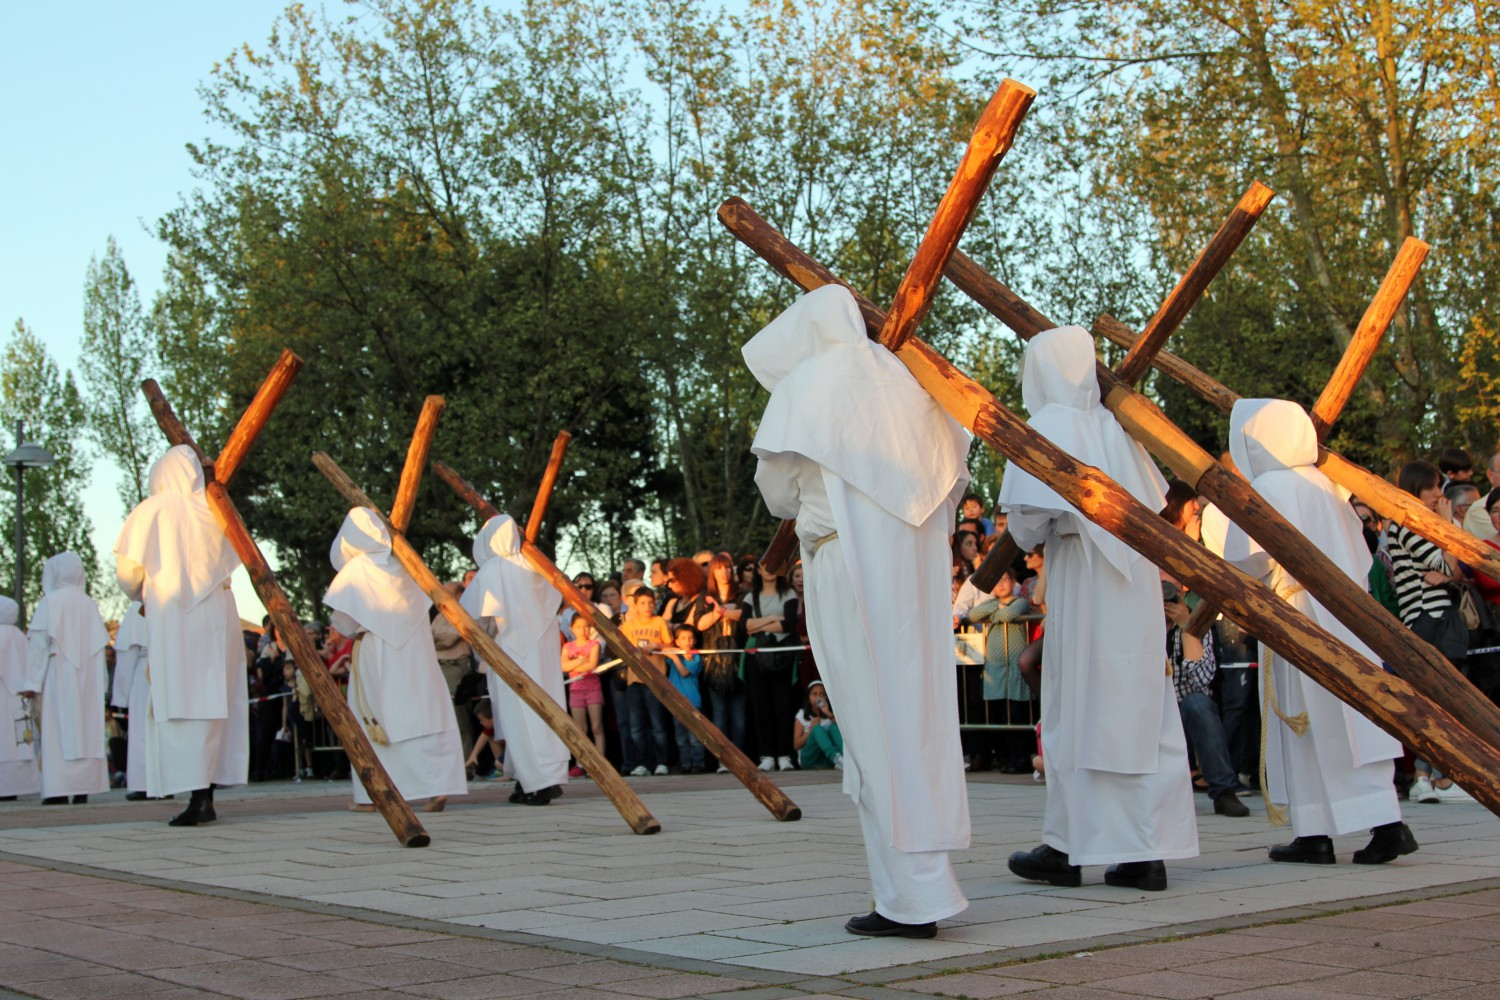 Semana Santa (Christian Holy Week)